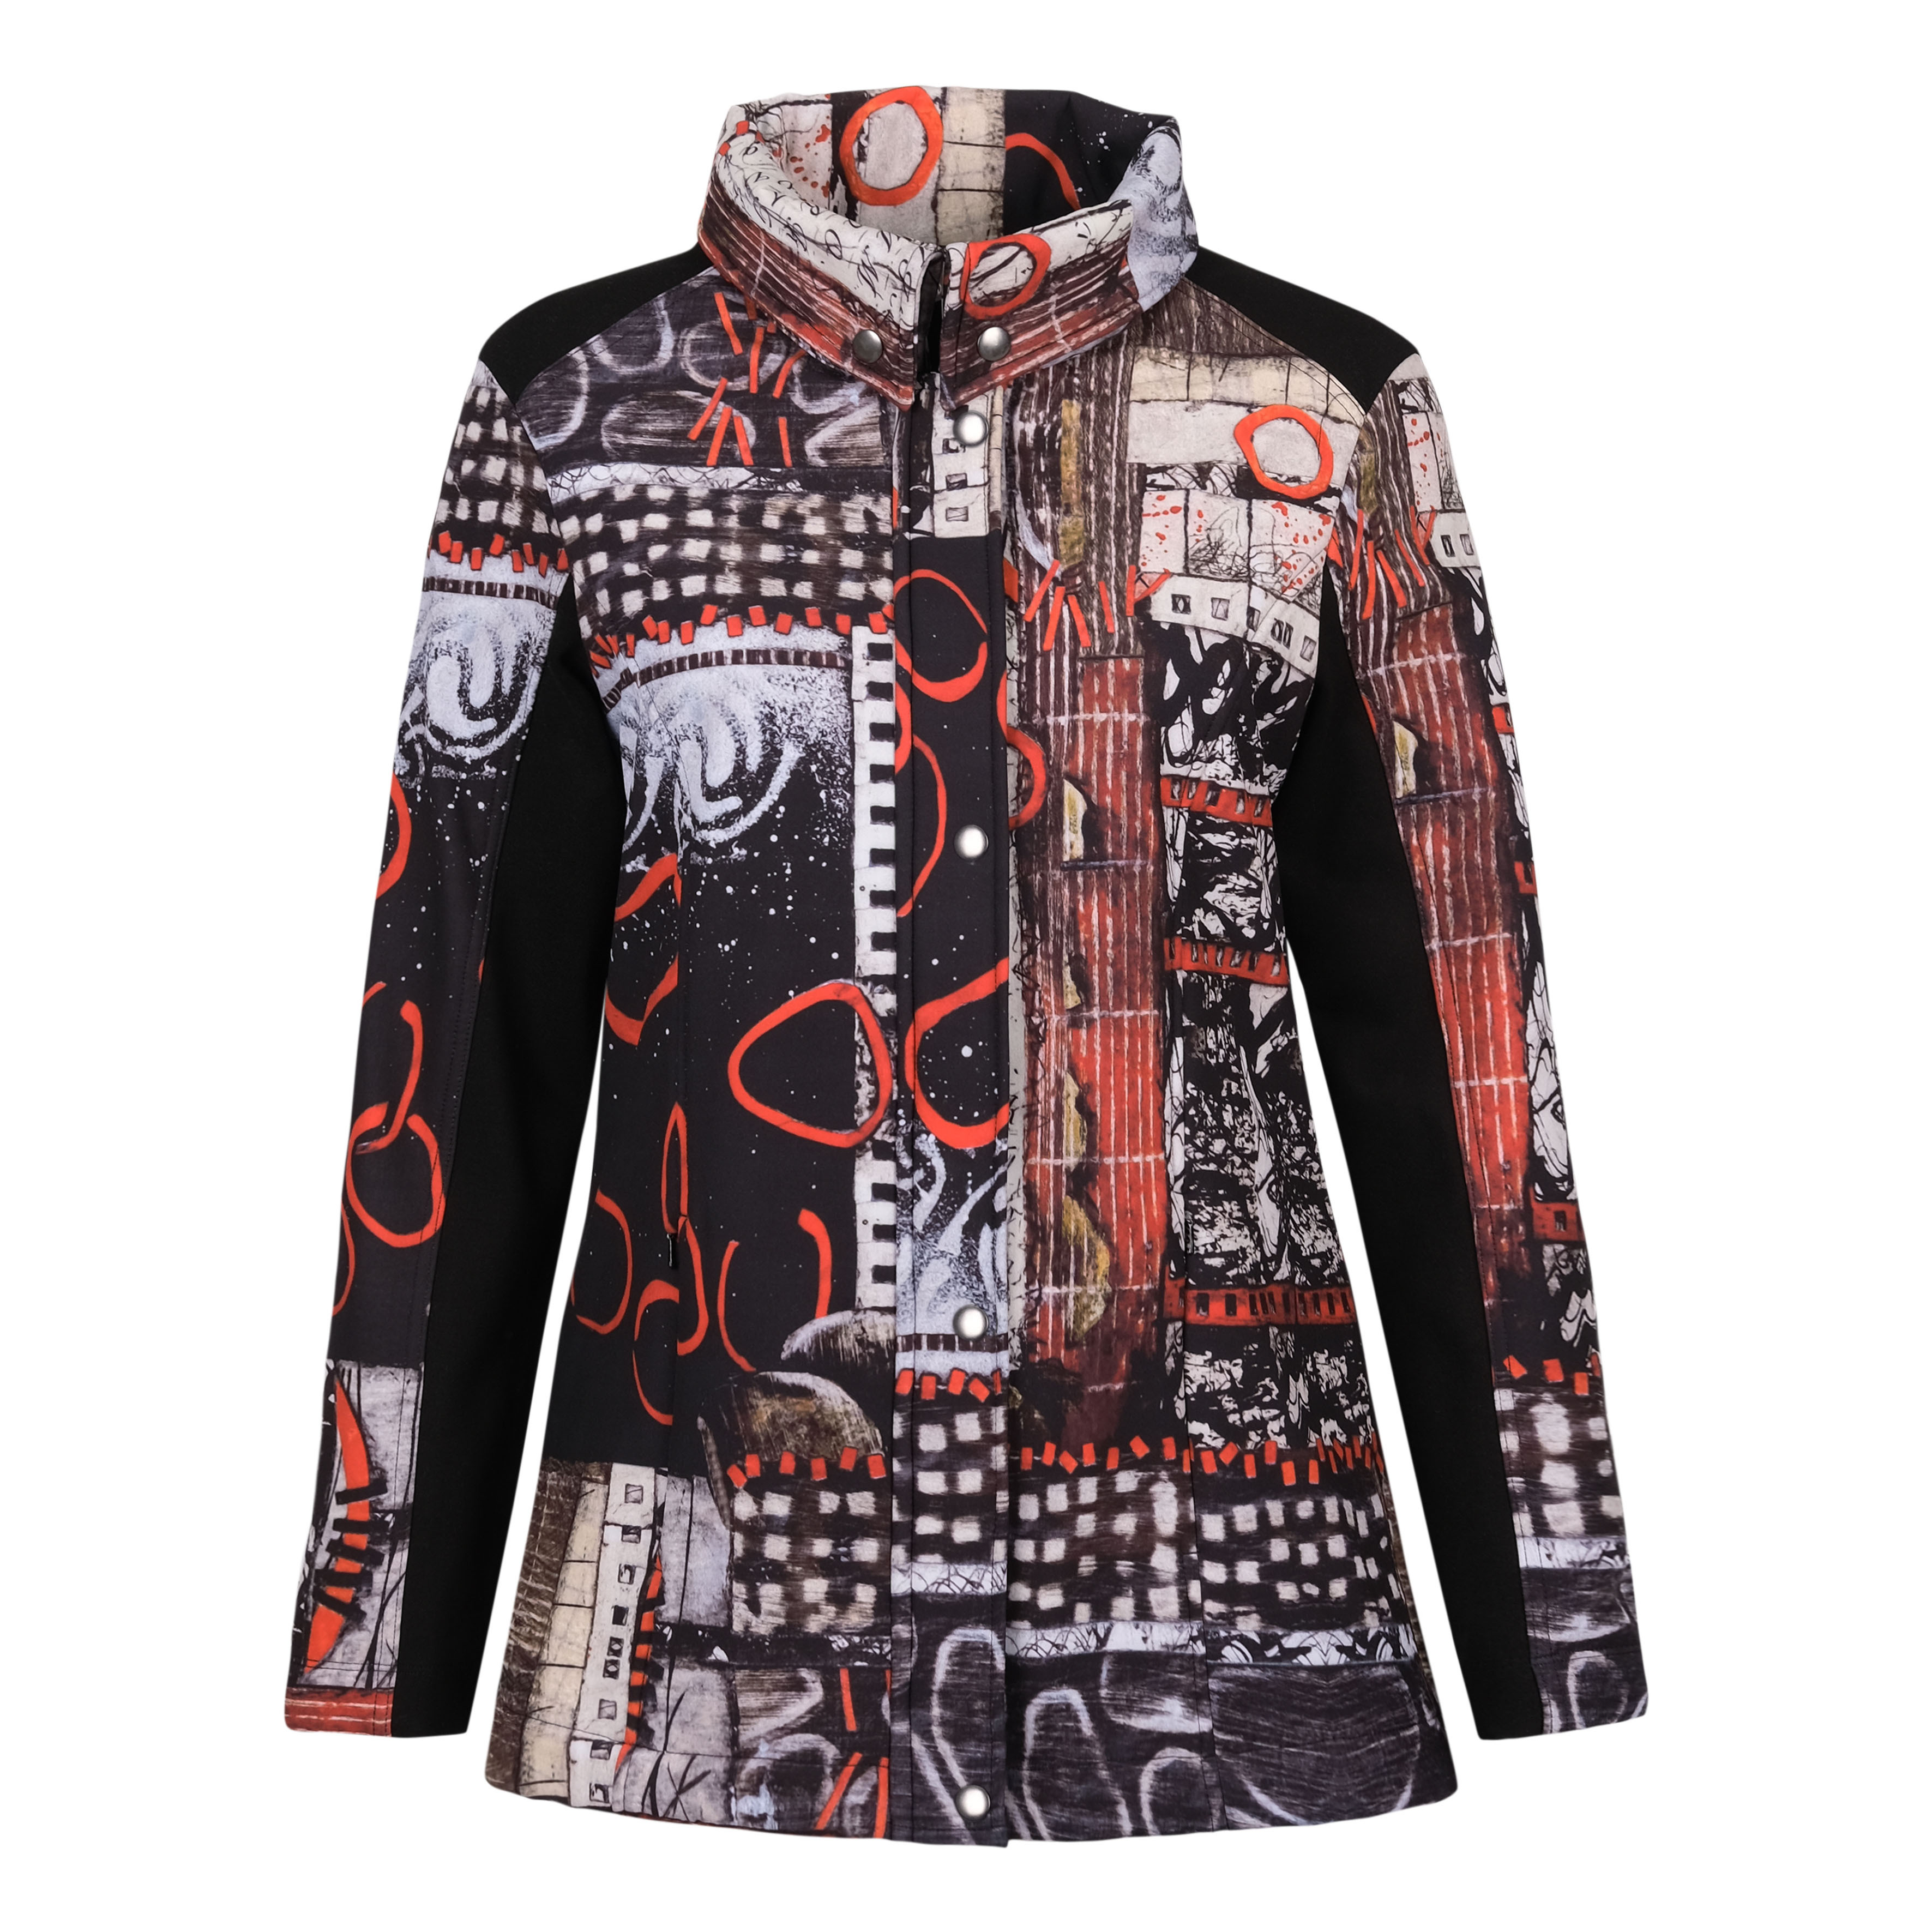 Simply Art Dolcezza: Rising Up In Color Soft Shell Flared Art Coat (1 Available at Special Price!)